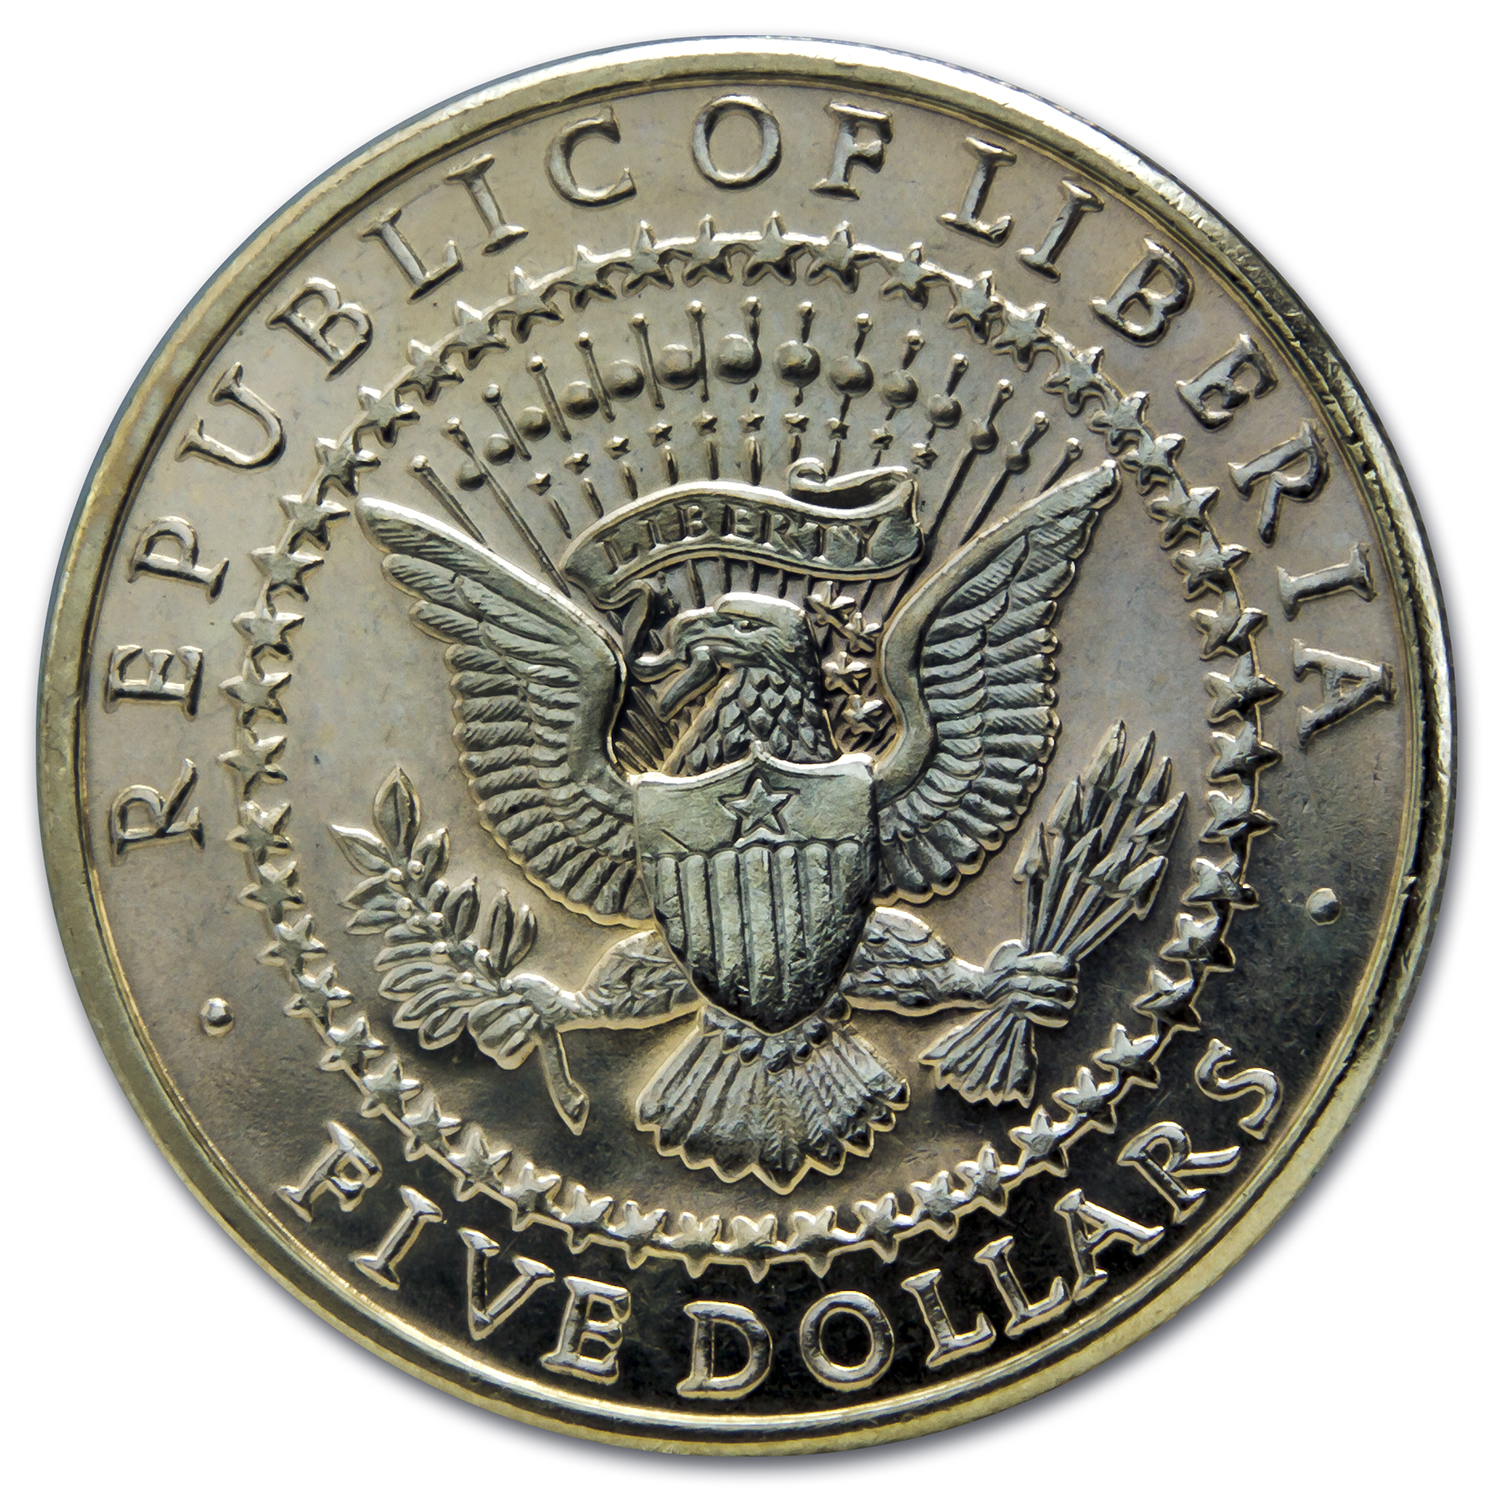 2000 Liberia Copper-Nickel $5 Presidents Series